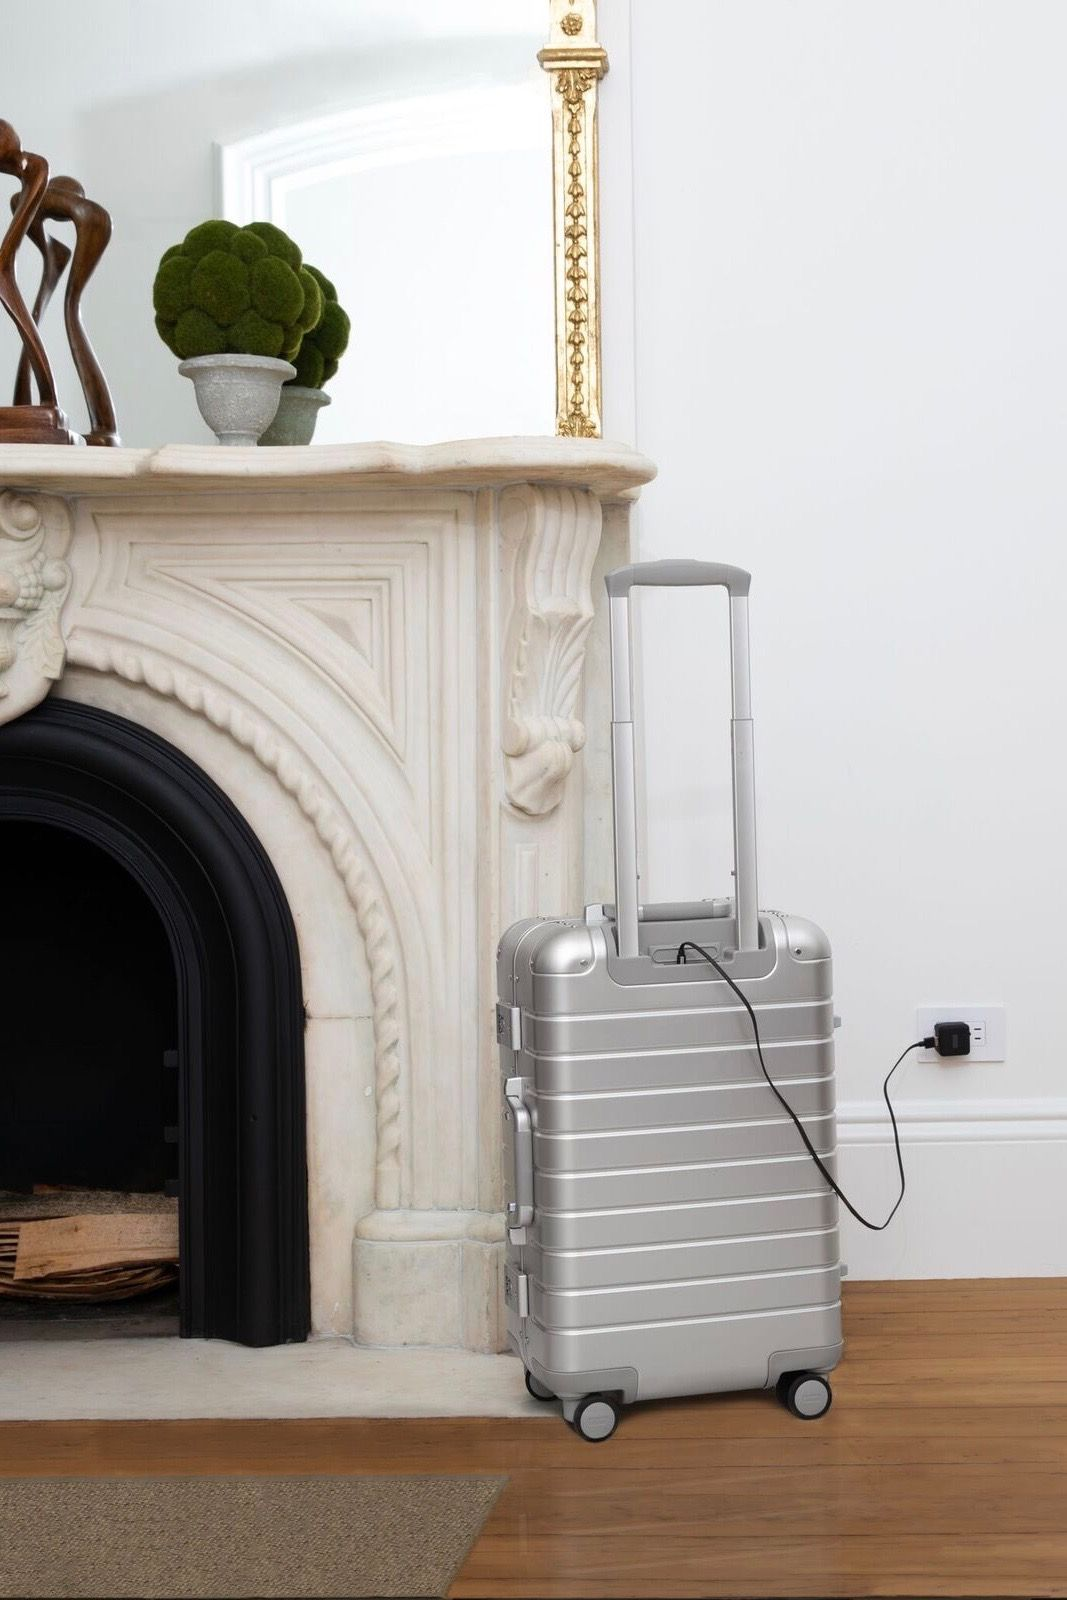 091ceb0c3 The Aluminum Edition isn't just your elevated luggage, it's also the  perfect decorating accessory. Shop The Bigger Carry-On: Aluminum Edition.